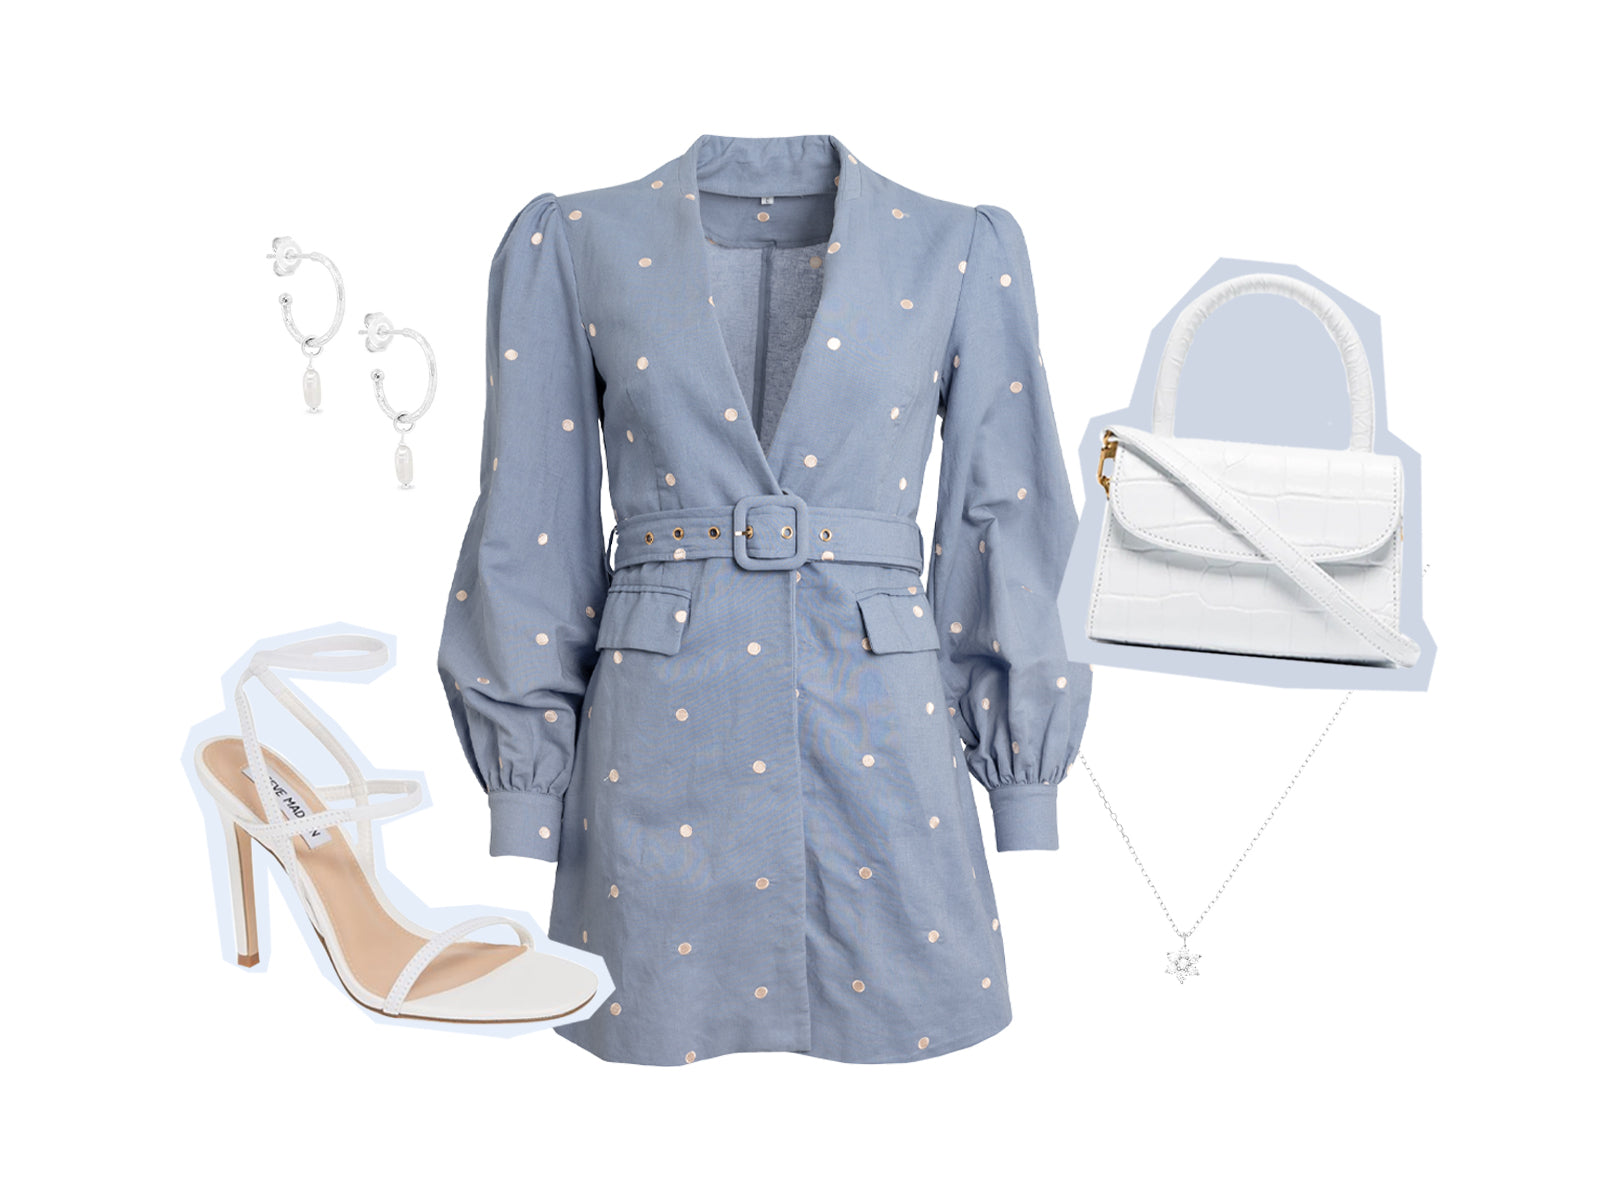 Gia Linen Party Mini Dress styled with heels and accessories